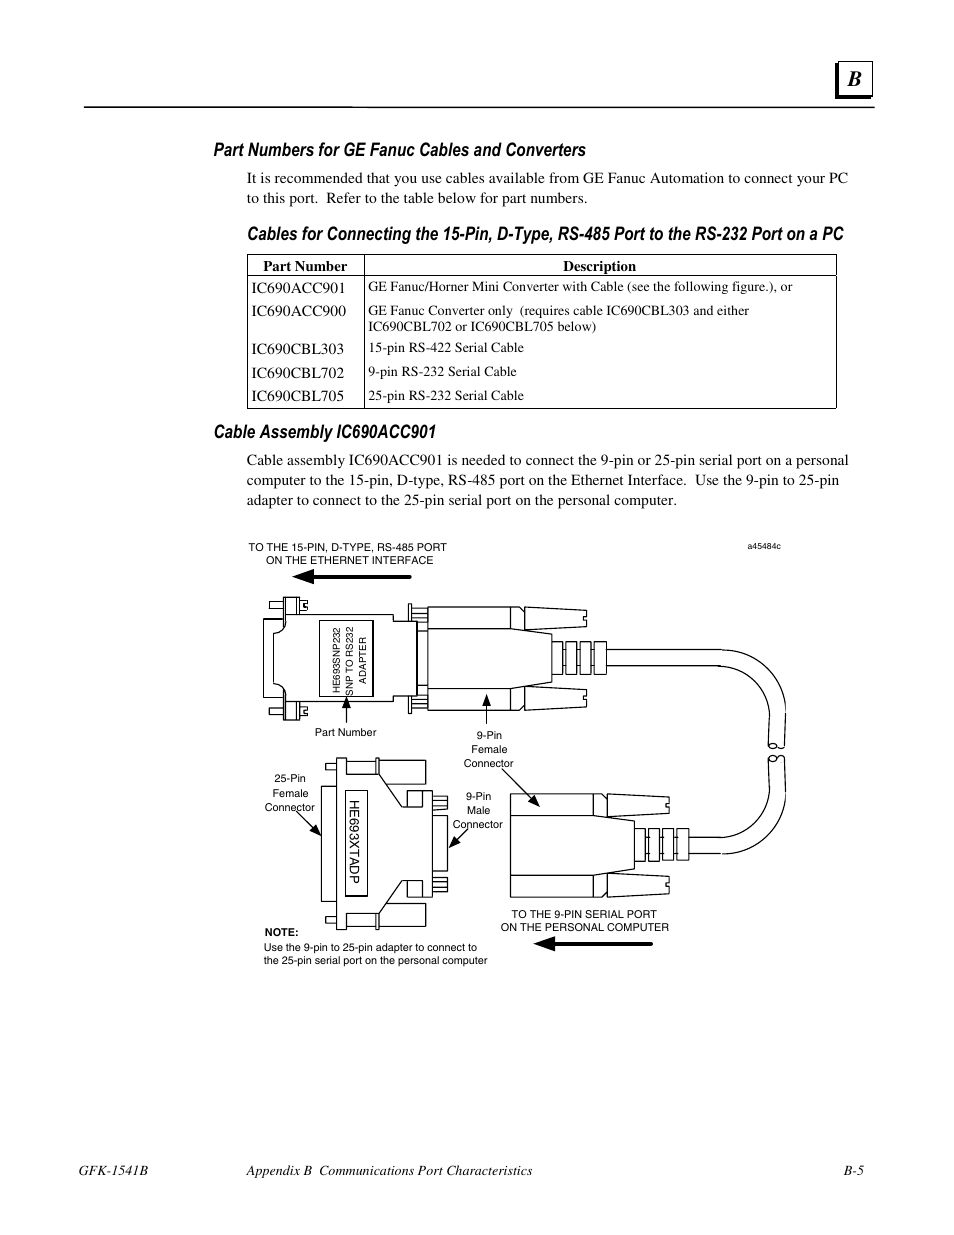 Part Numbers For Ge Fanuc Cables And Converters Gfk 1541b User 232 To 485 Wiring Diagram Serial Connector Manual Page 206 240